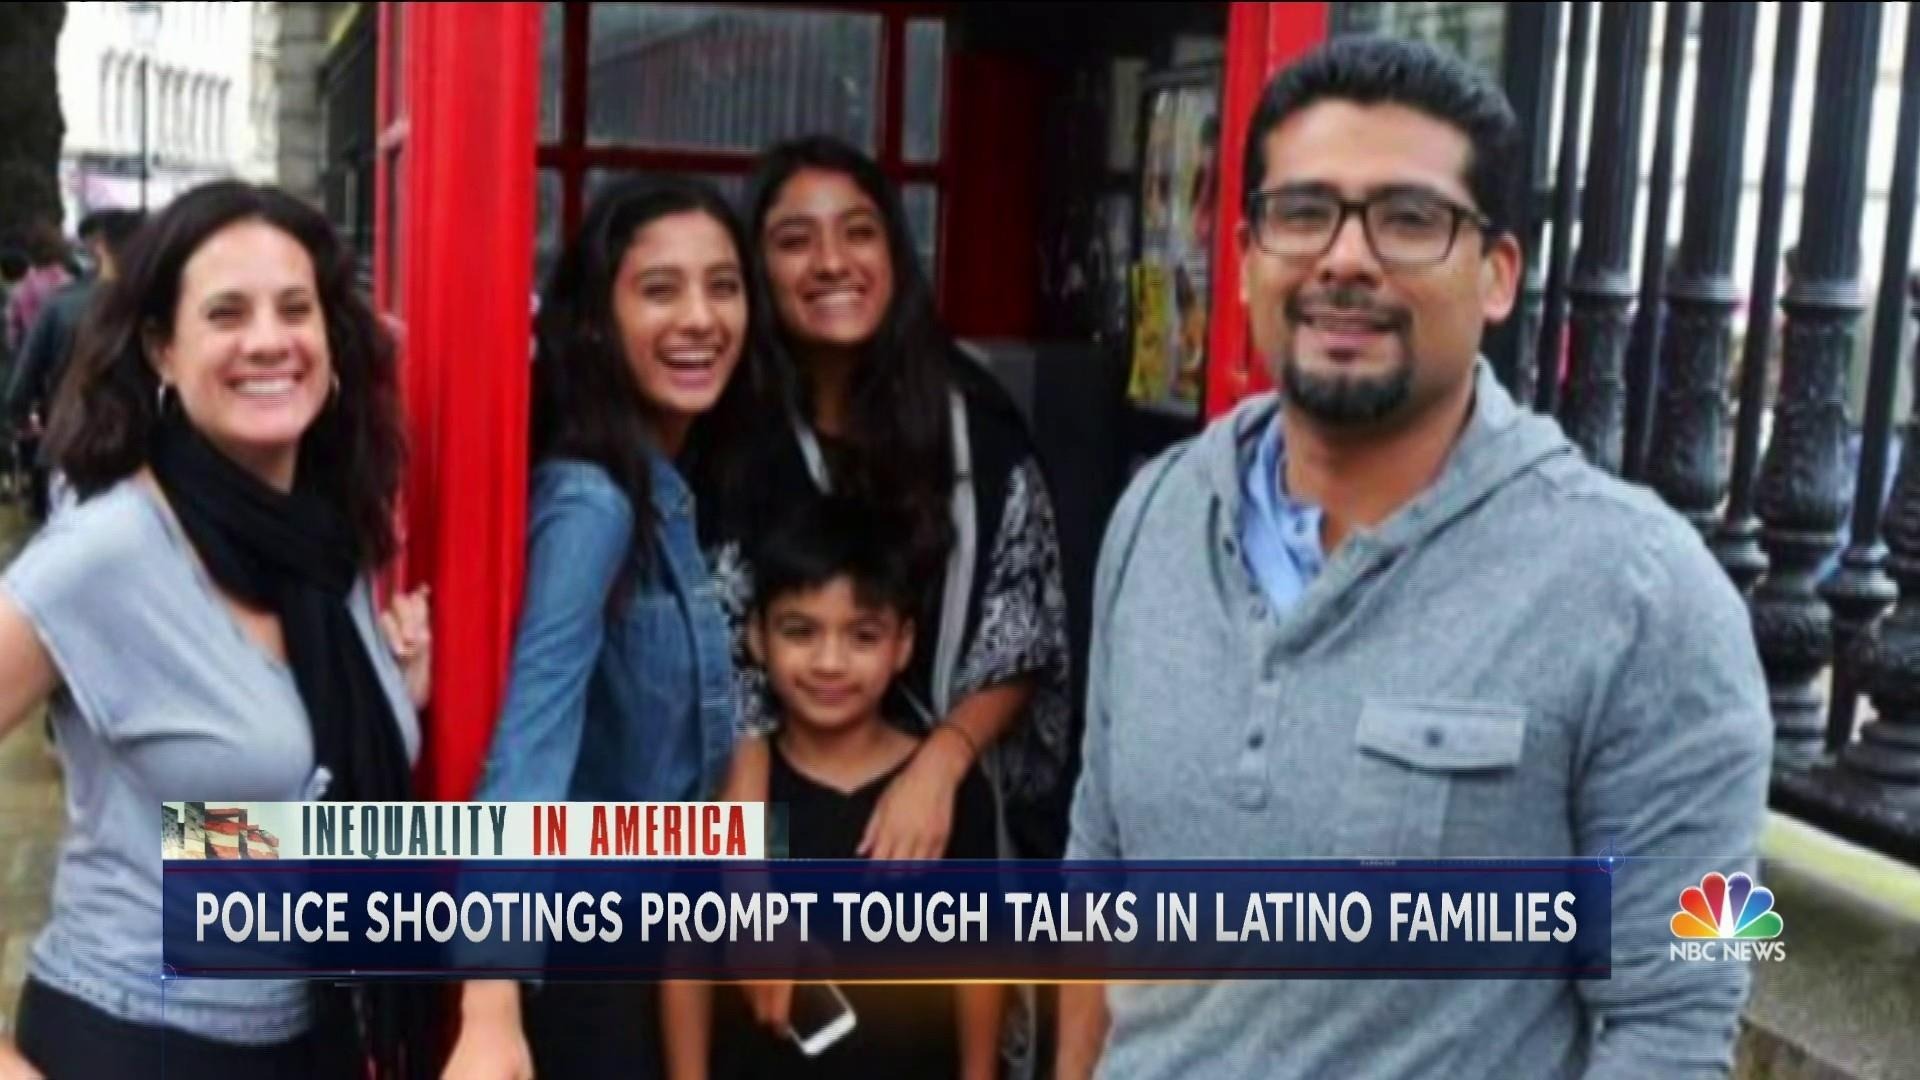 'The Talk': Latino parents address what to do when stopped by police